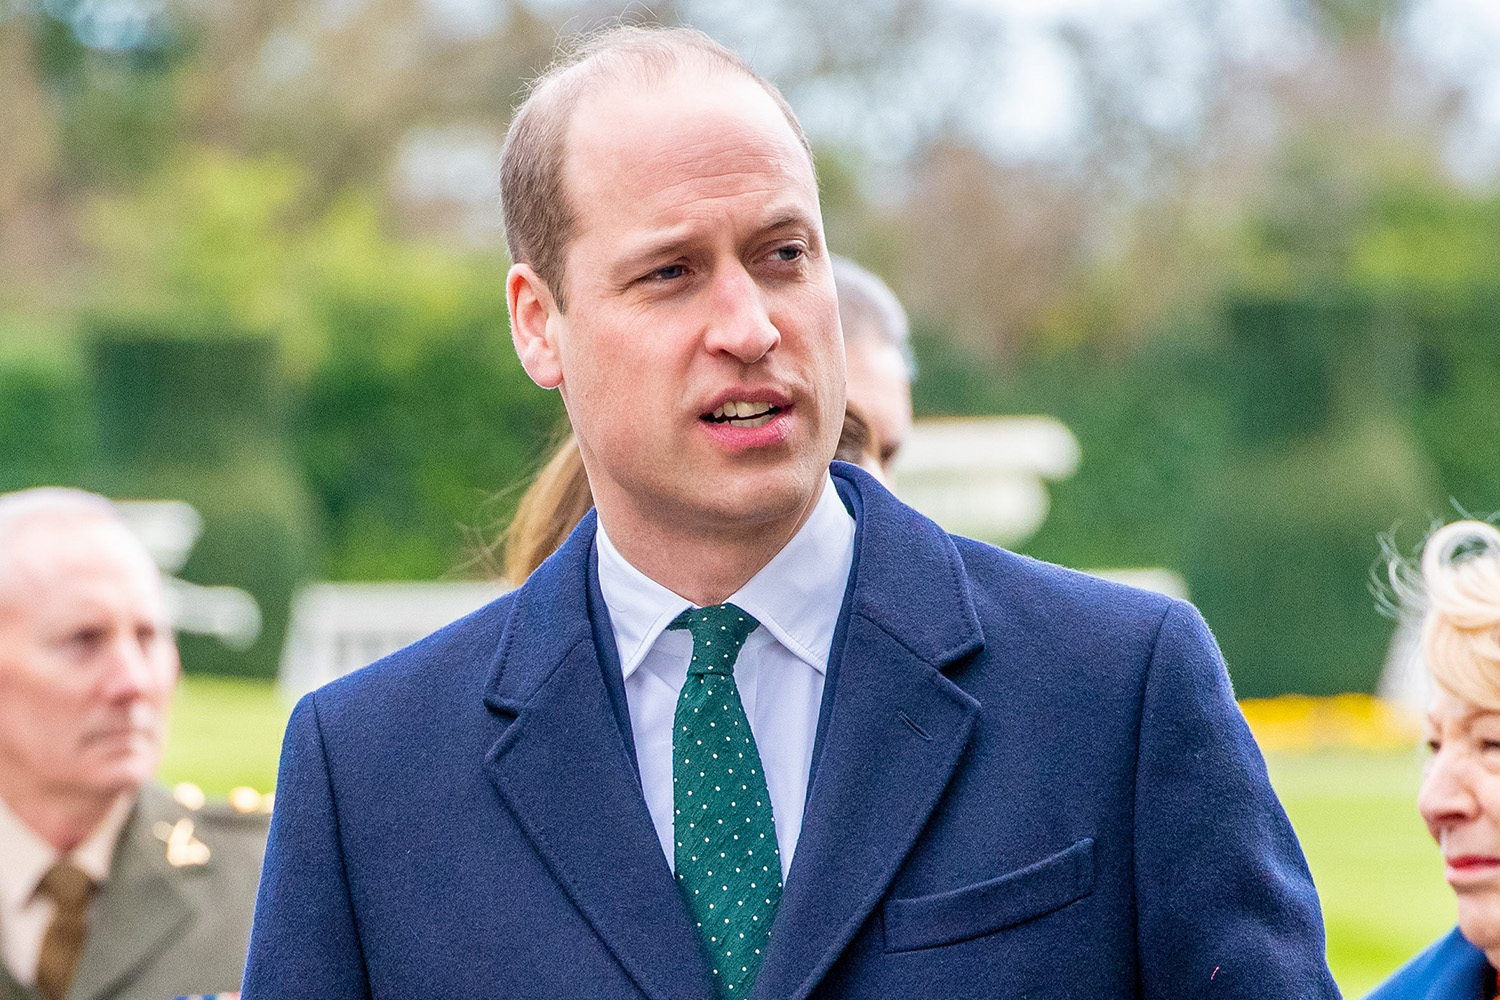 Prince William's birthday 'will be tinged with sadness as he misses mother Diana'